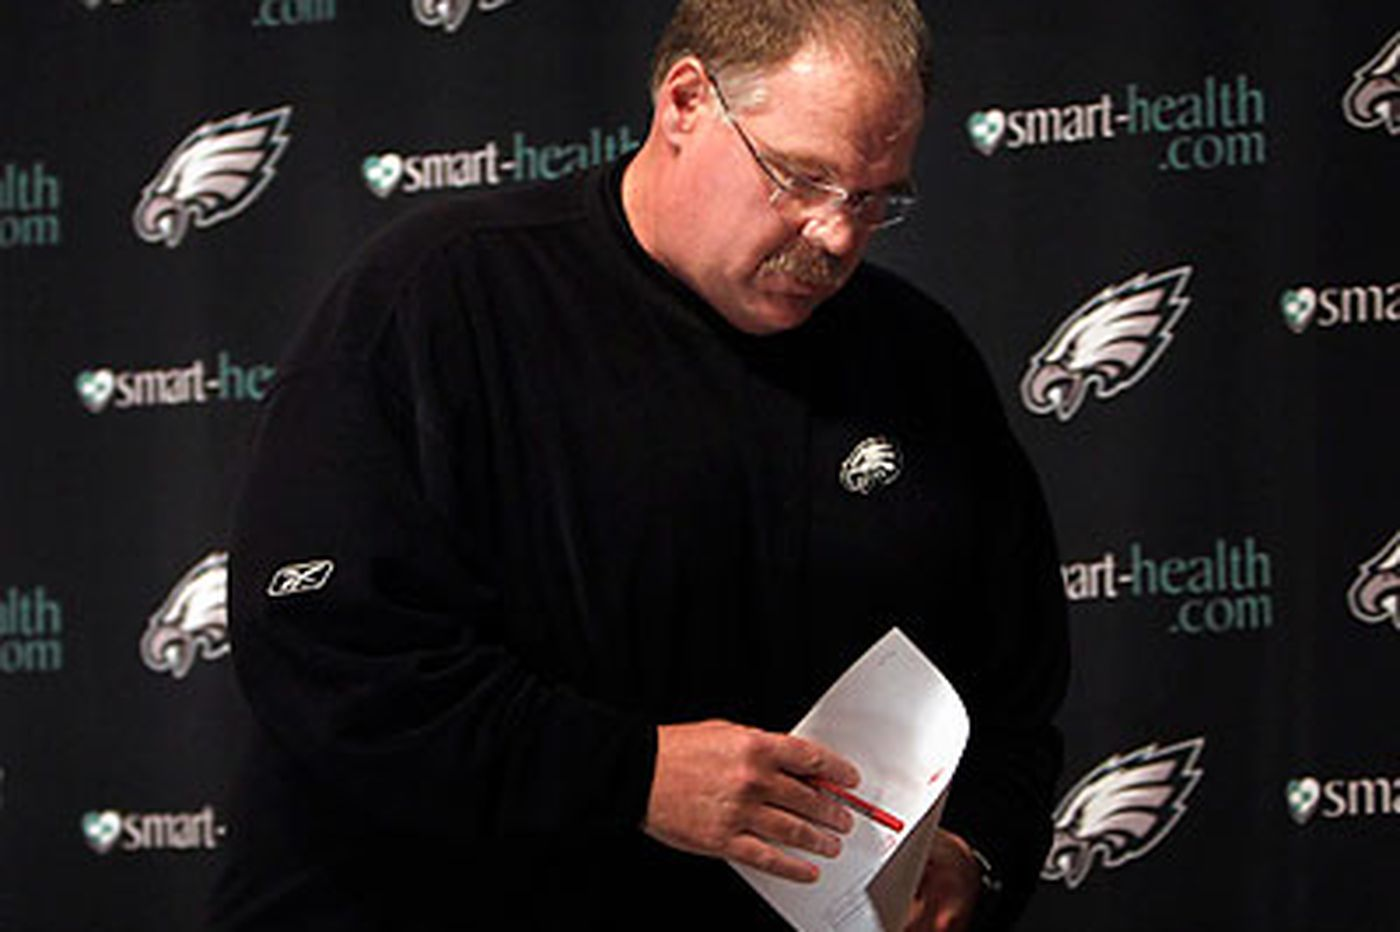 Eagles Notes: 'Being successful takes time,' Reid says of young Eagles team